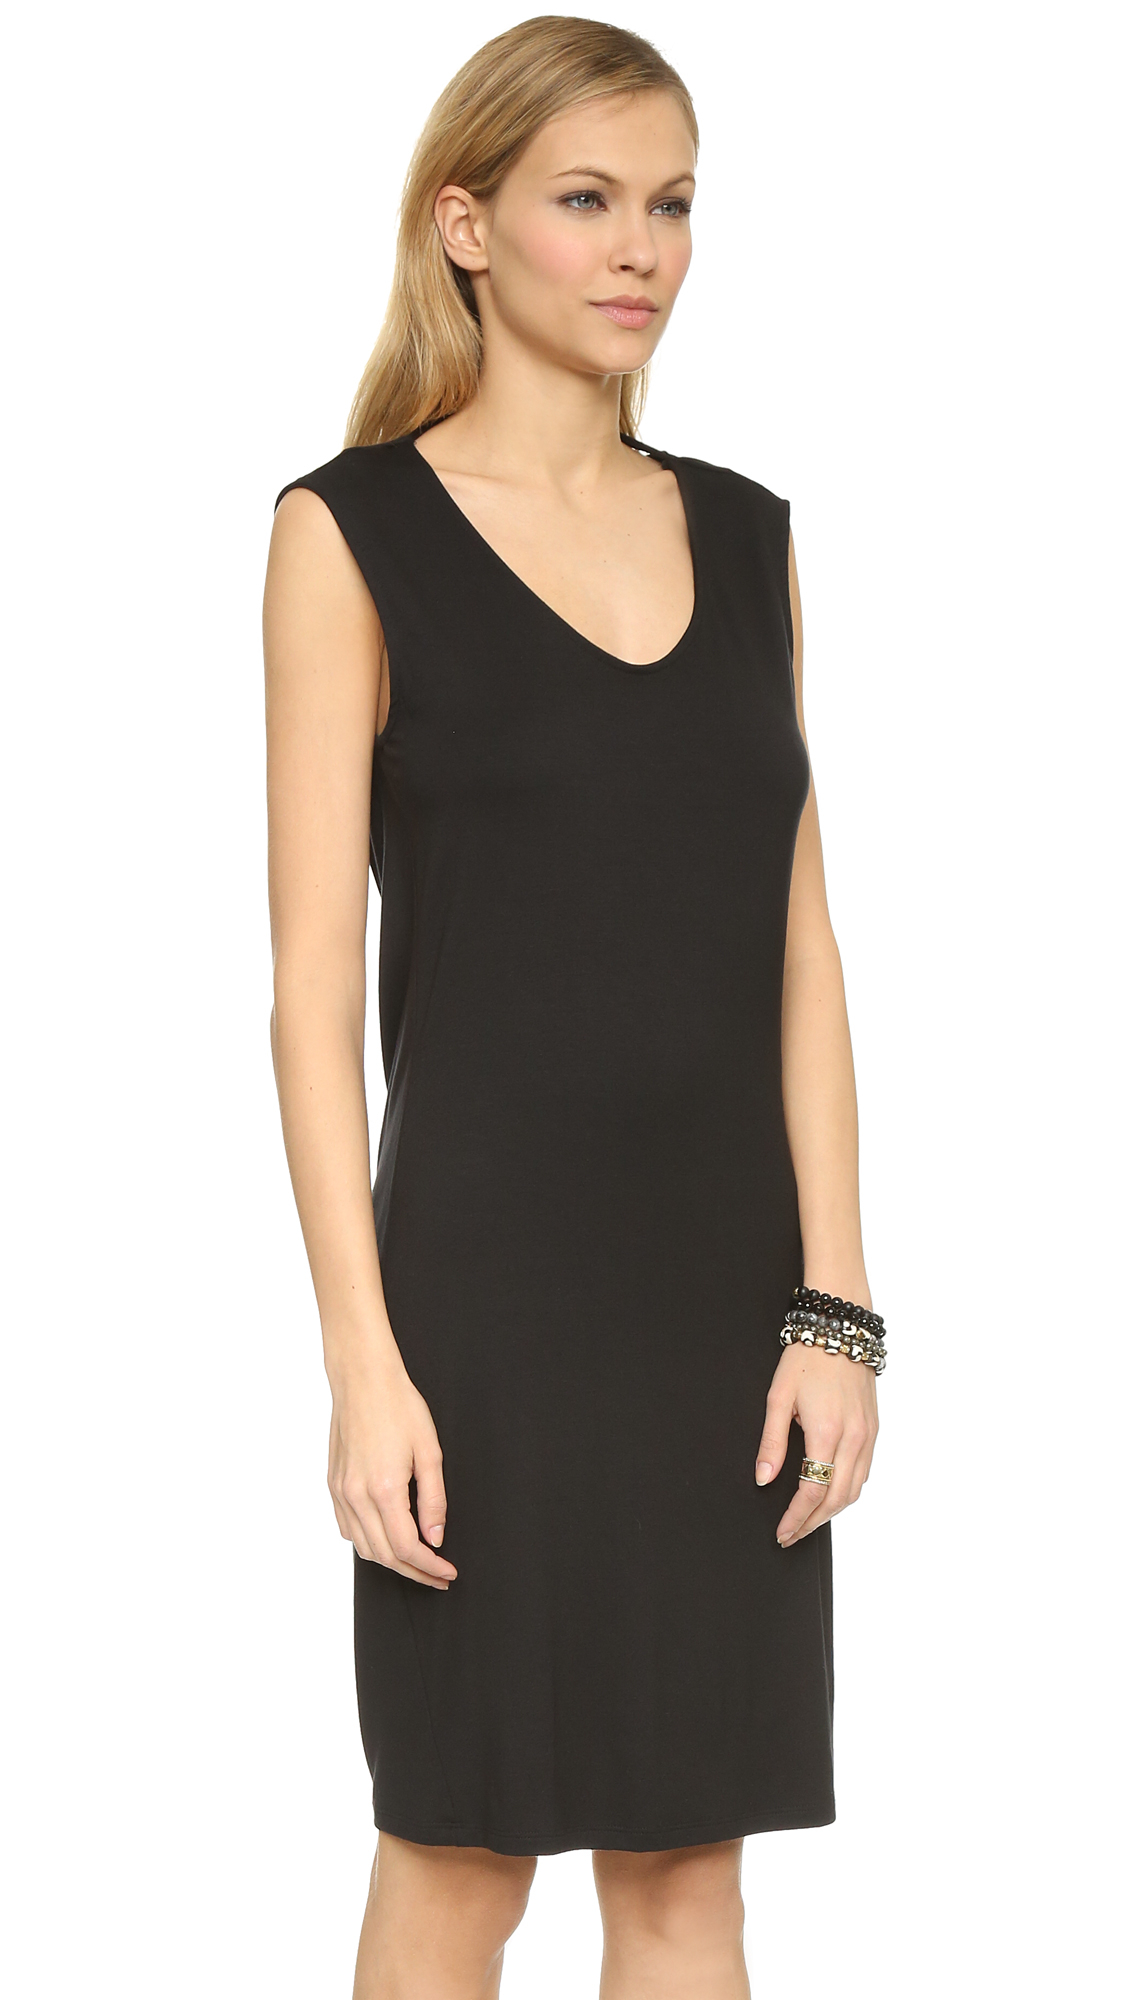 Three dots Draped Back Sleeveless Dress - Black in Black ...